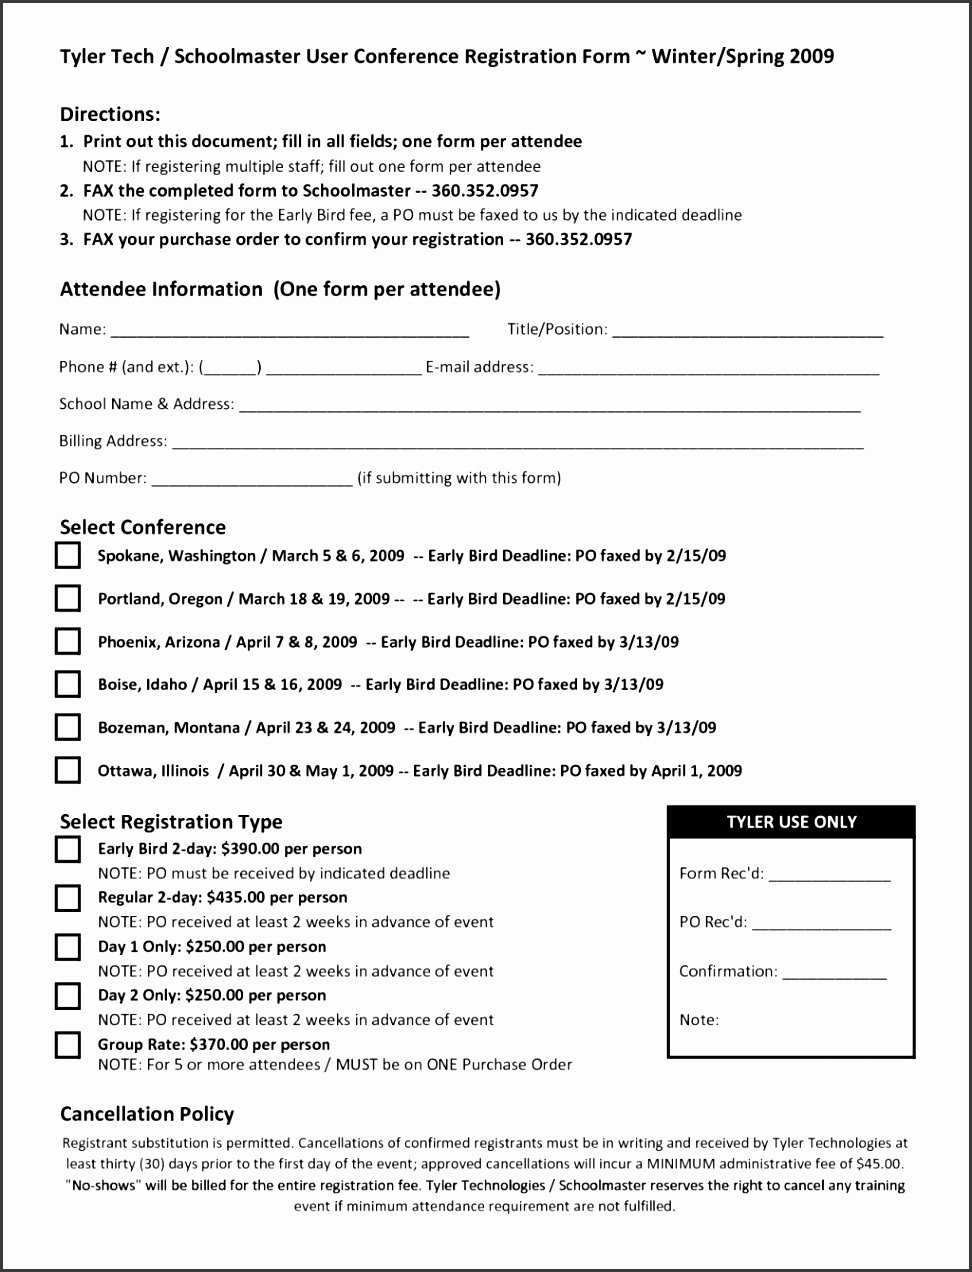 Class Registration form Template New 9 School Registration form Template Word Sampletemplatess Sampletemplatess